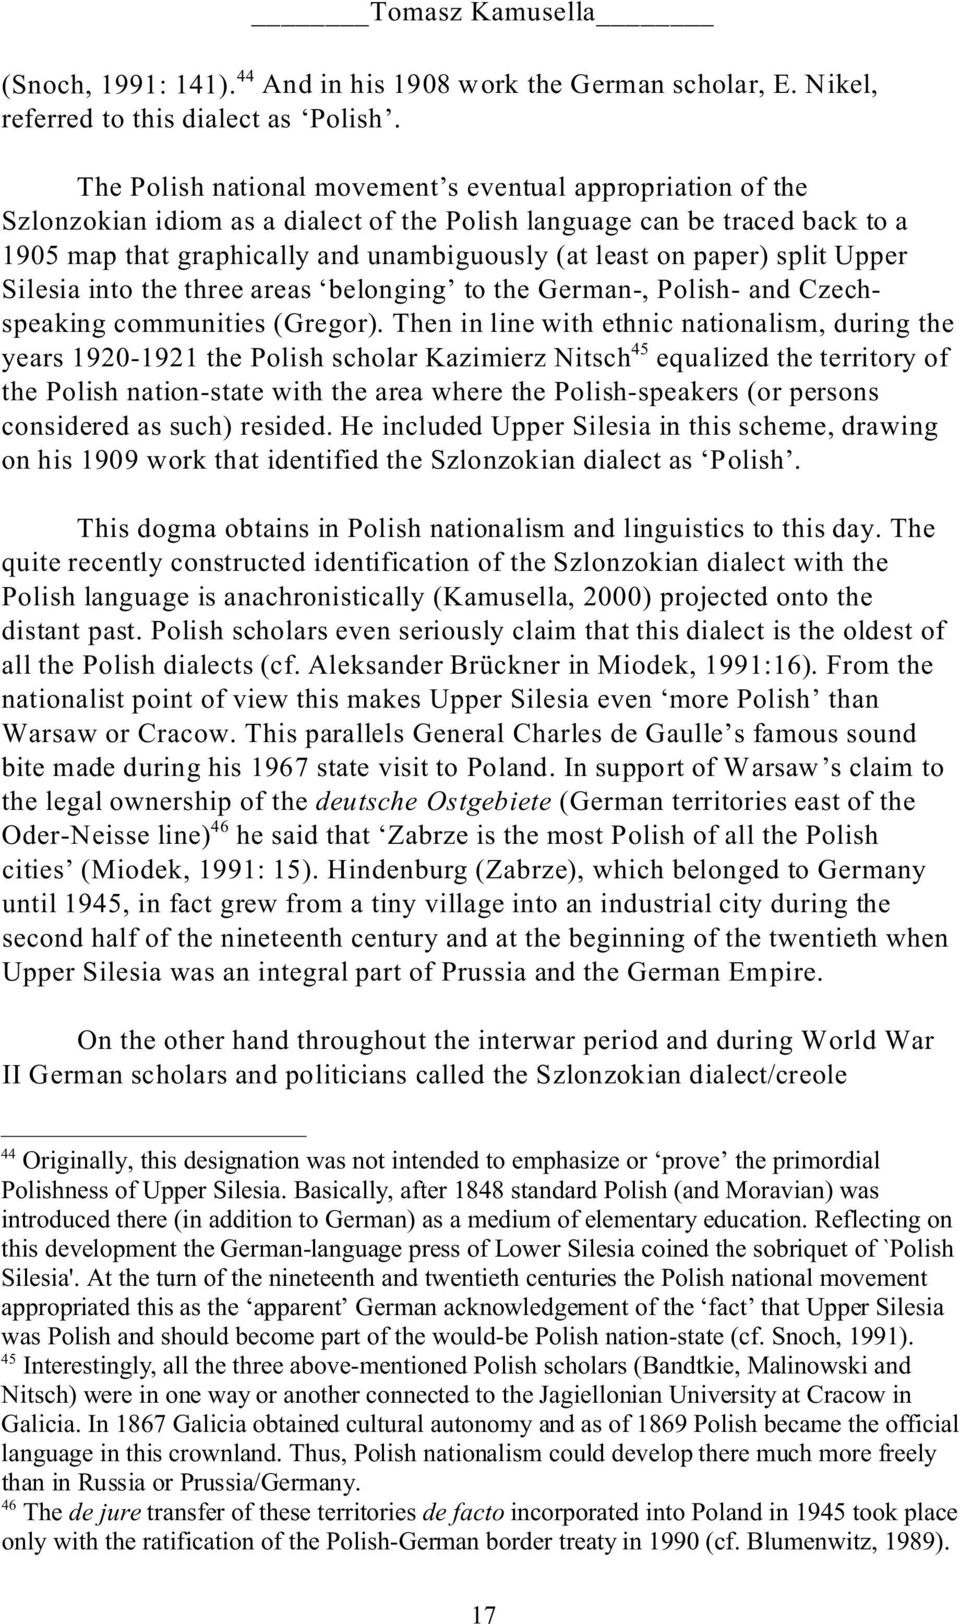 paper) split Upper Silesia into the three areas belonging to the German-, Polish- and Czechspeaking communities (Gregor).